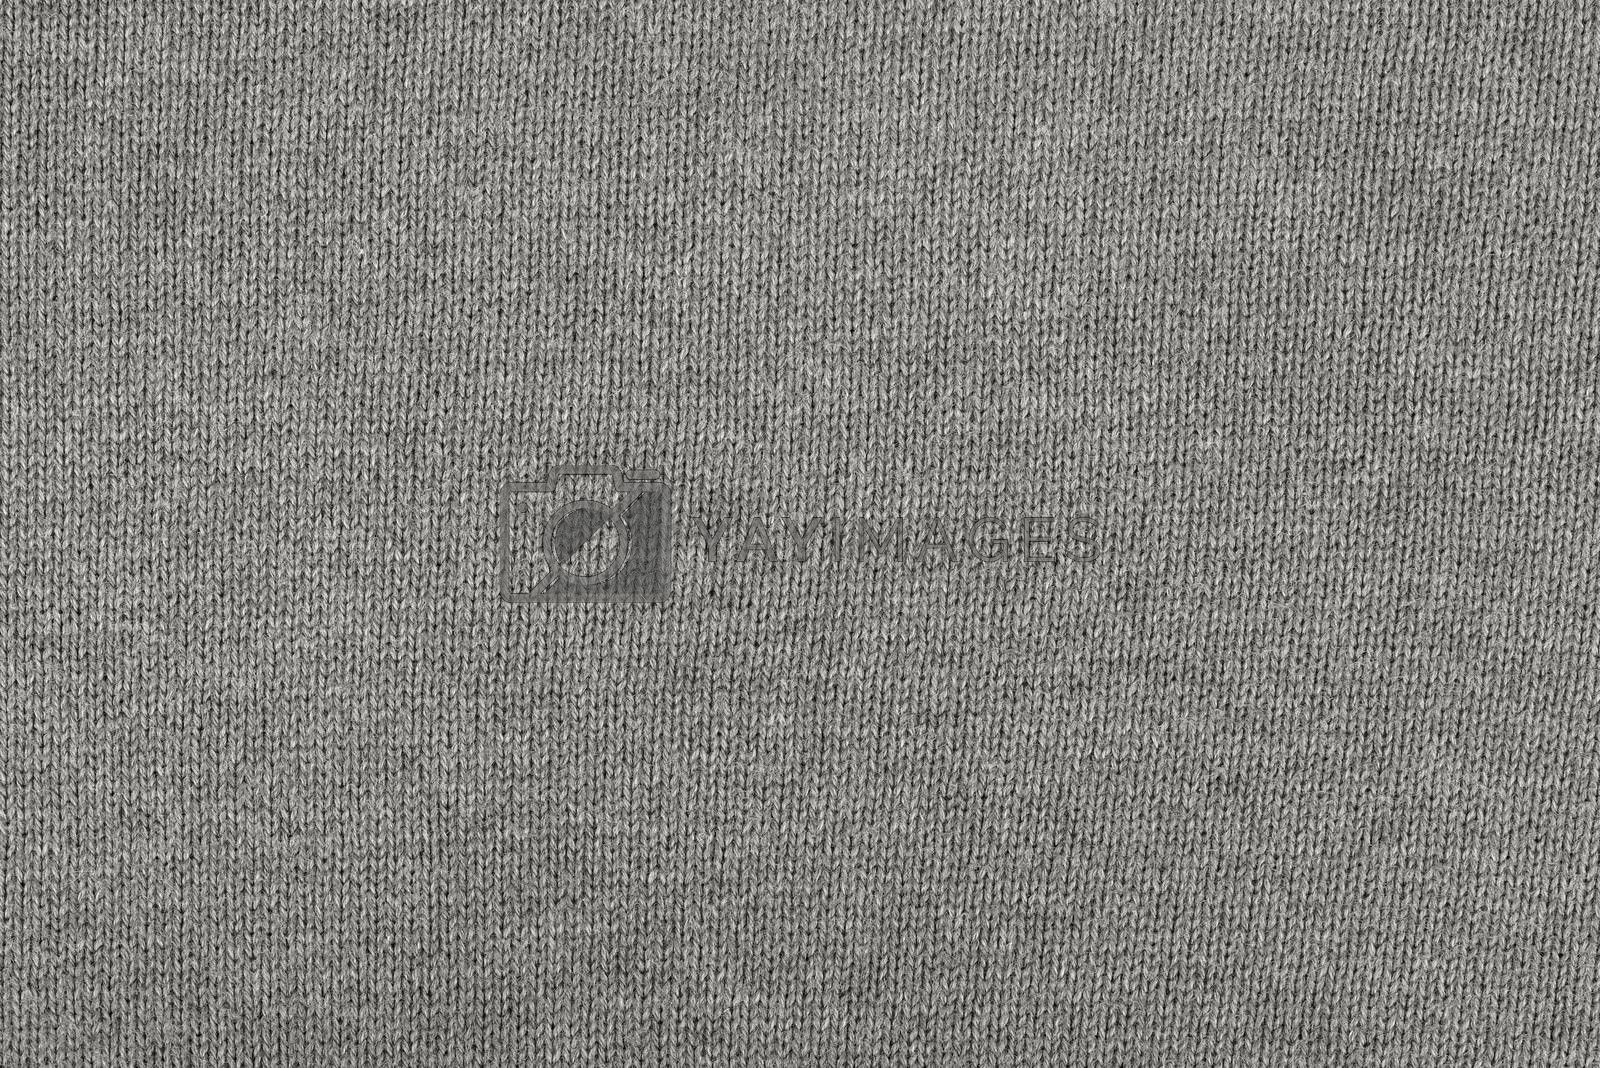 Detailed gray cotton fabric texture or background